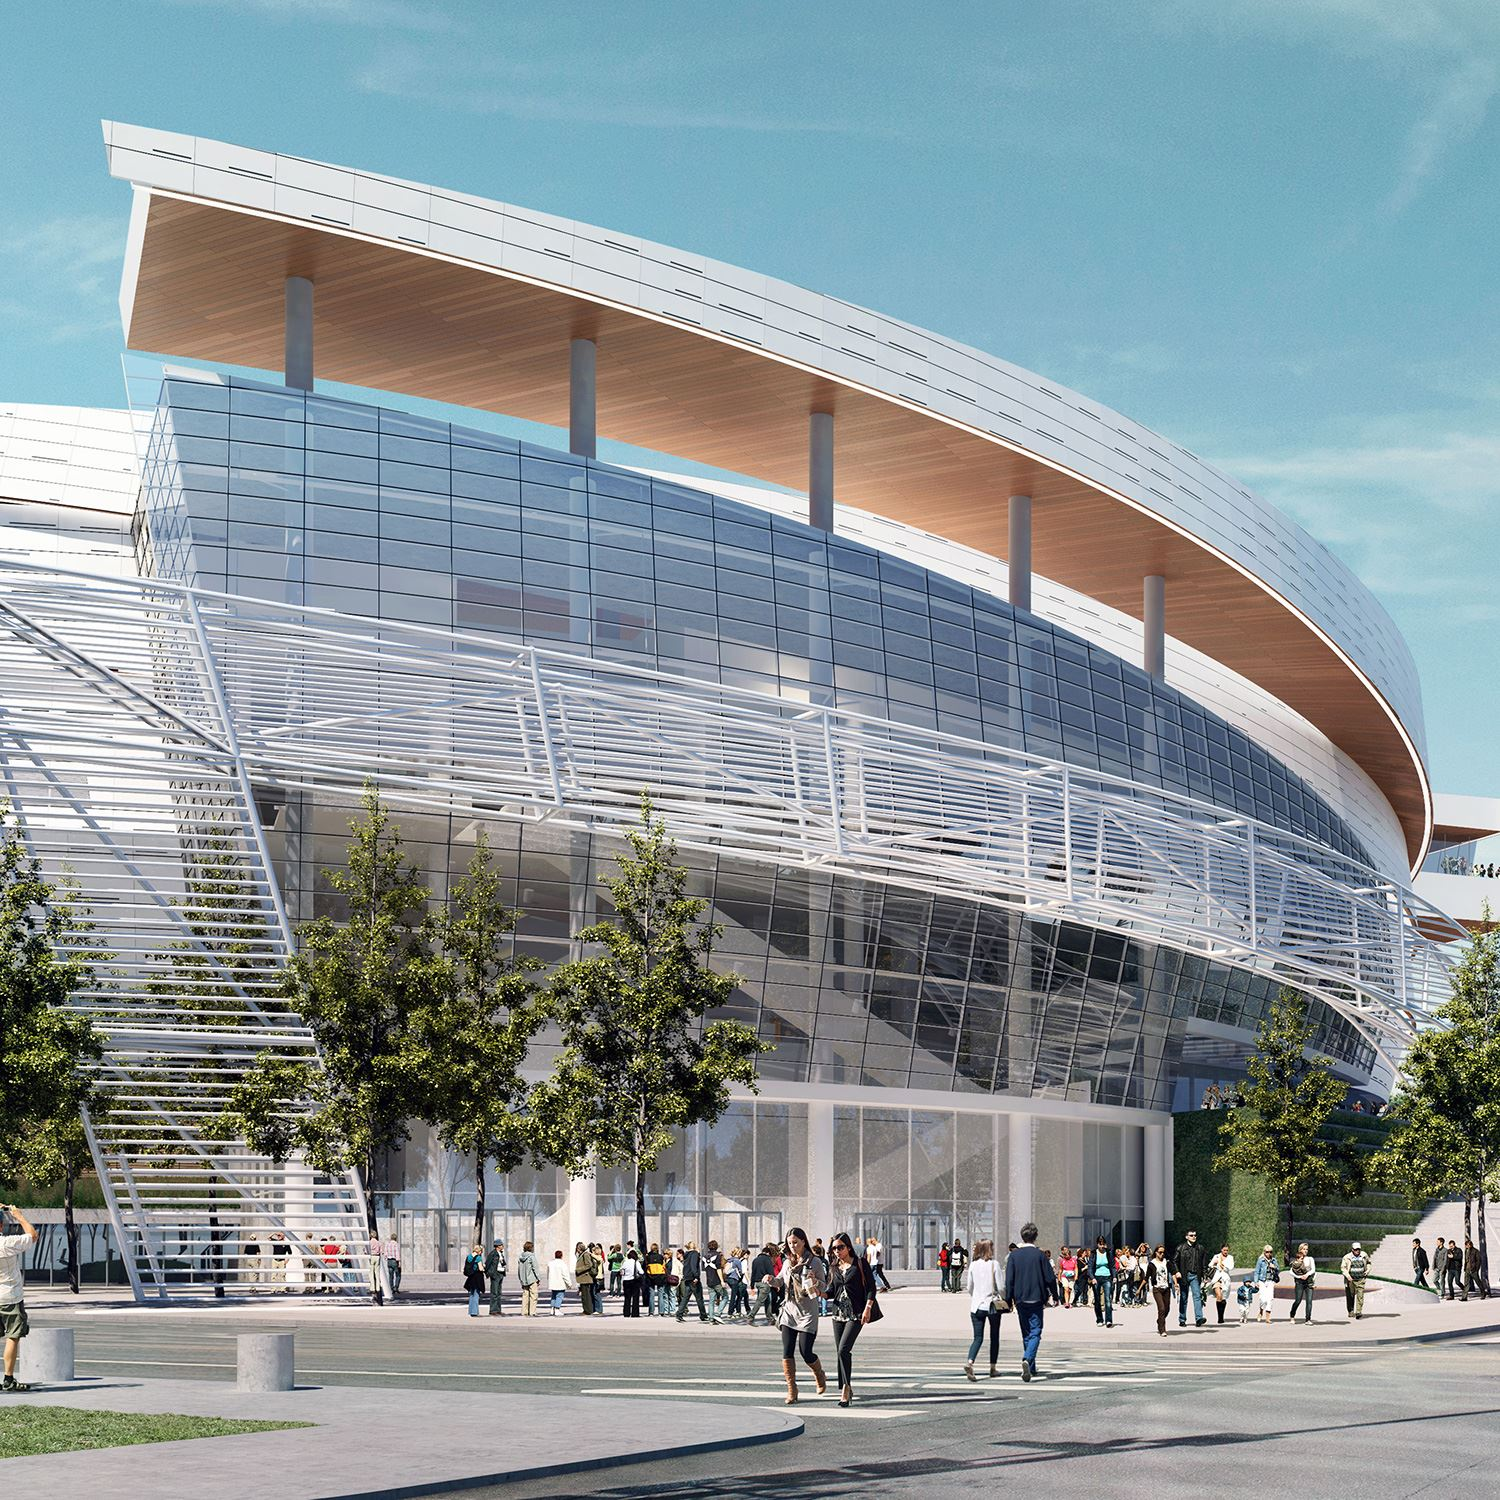 When Do Warriors Move To San Francisco: Uber Buys Space Near New Warriors Arena, Cuts Oakland Move